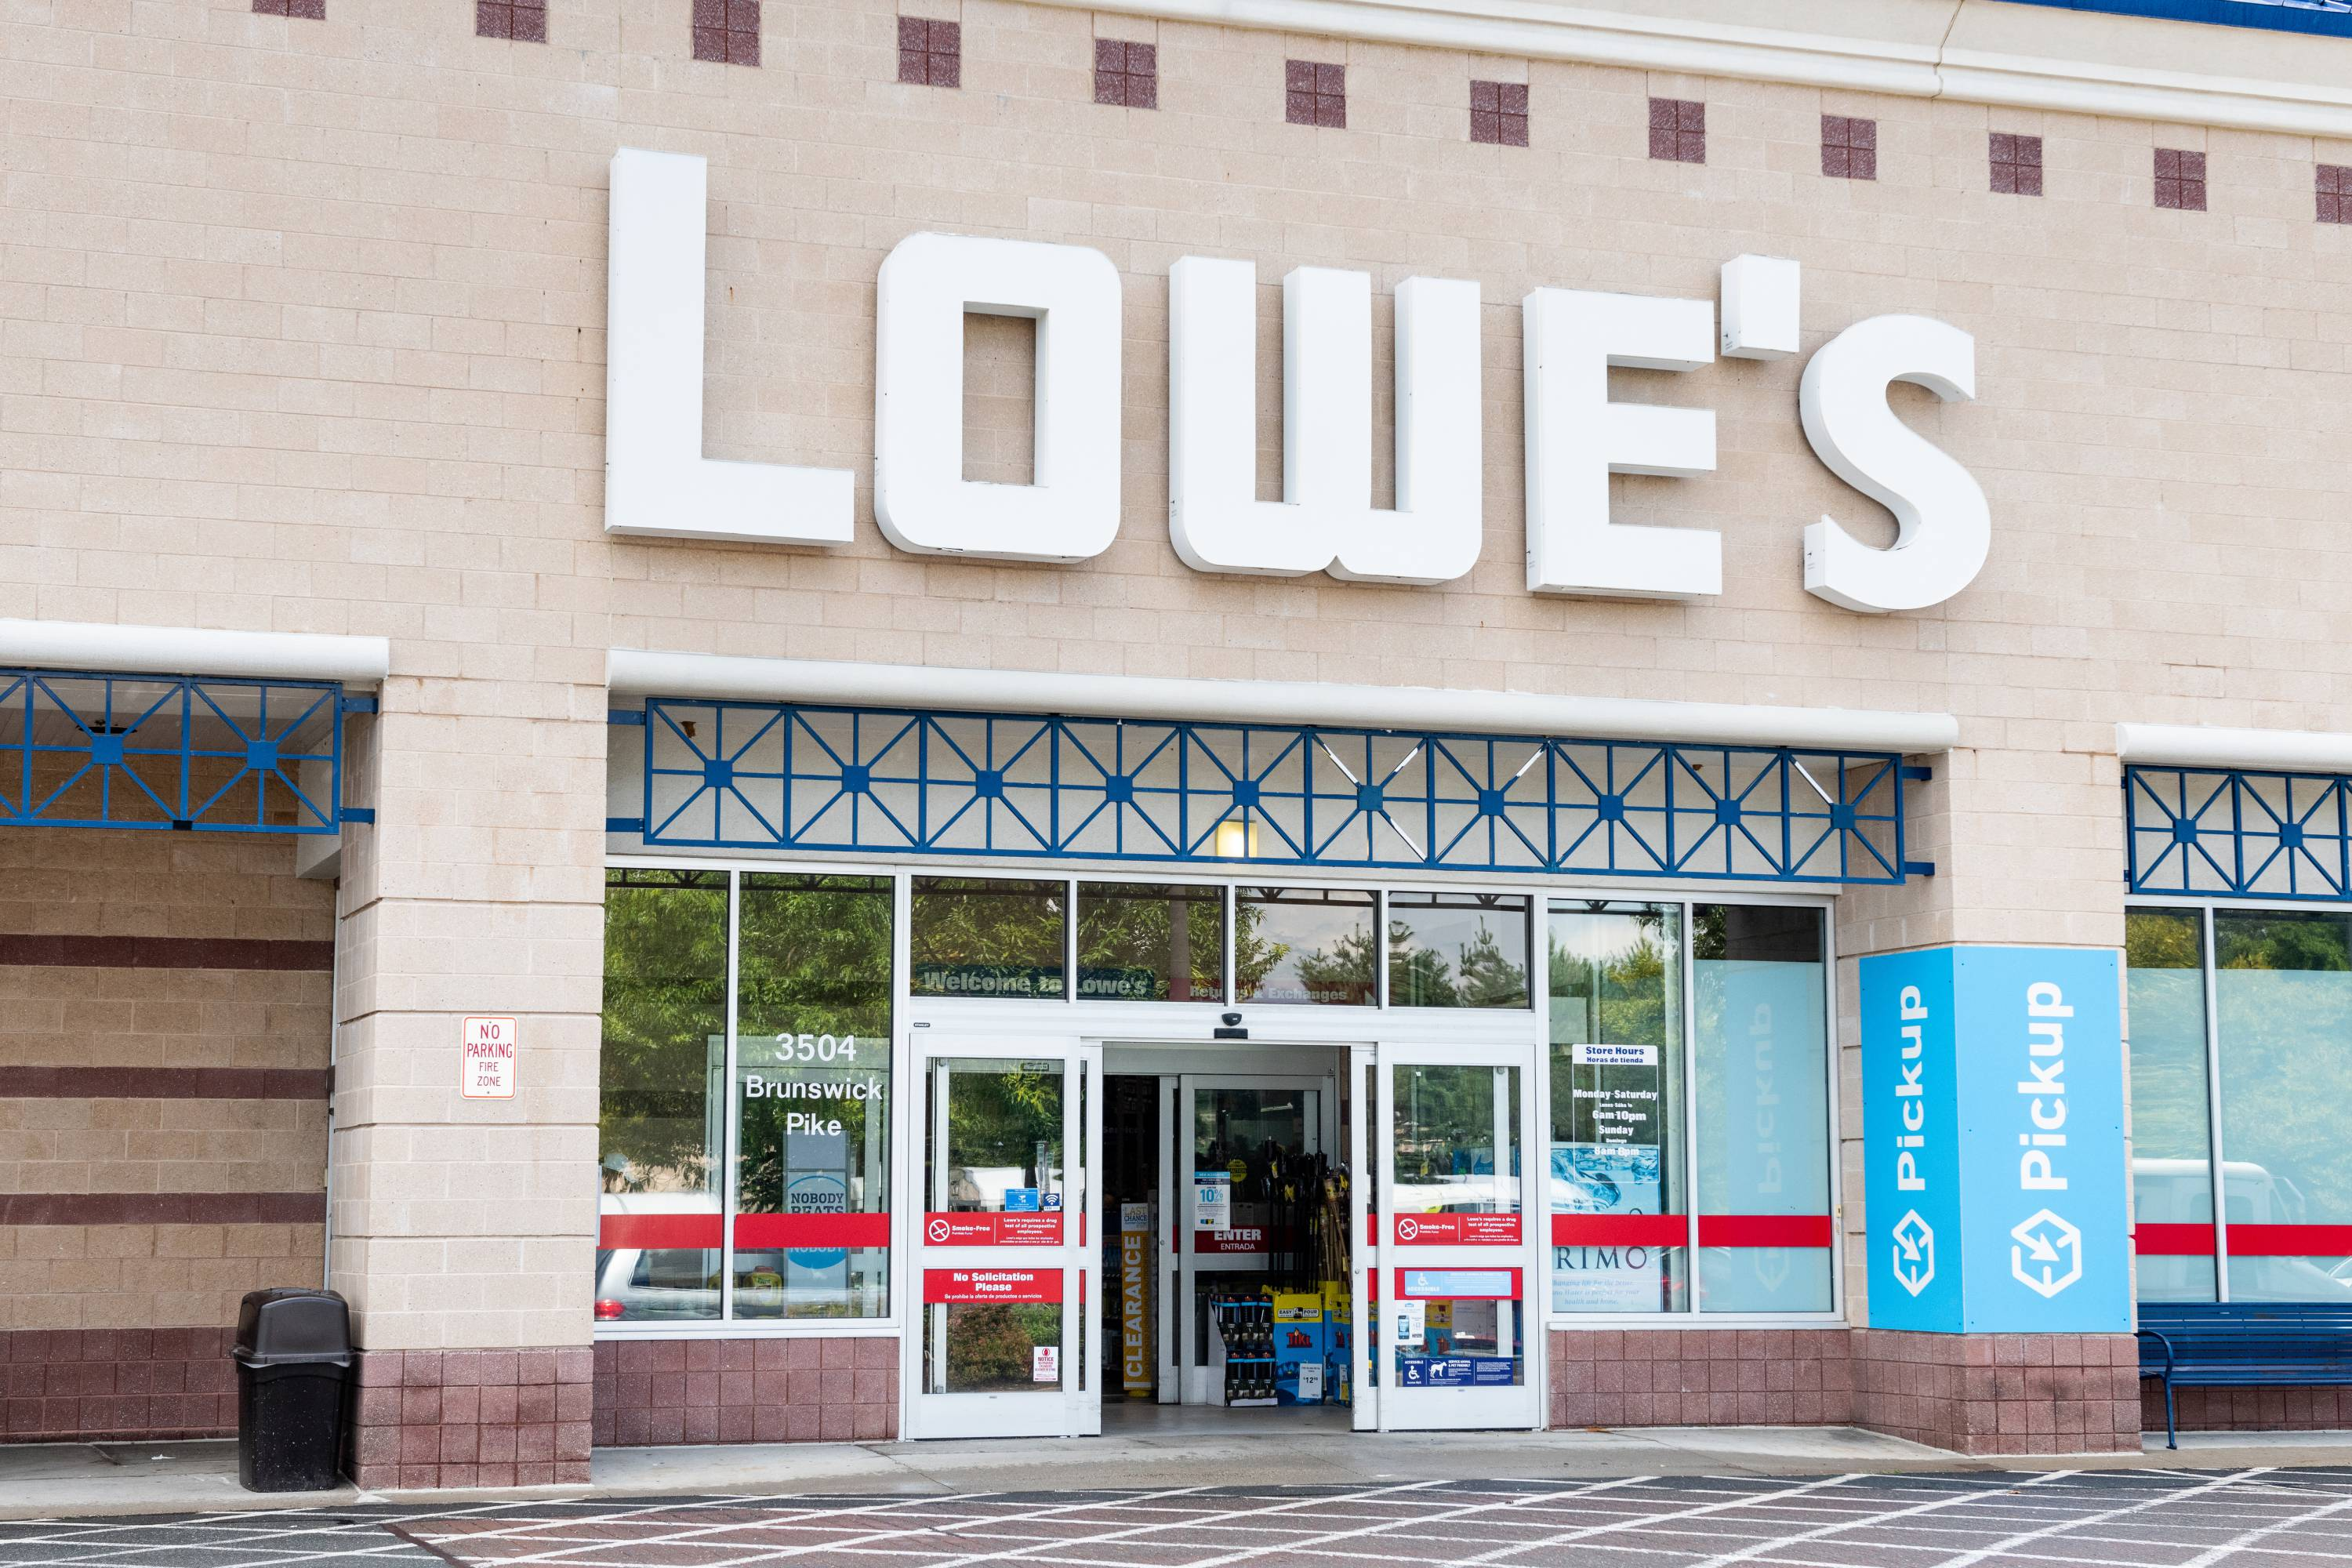 Lowe's Home Improvement store in Princeton, New Jersey on